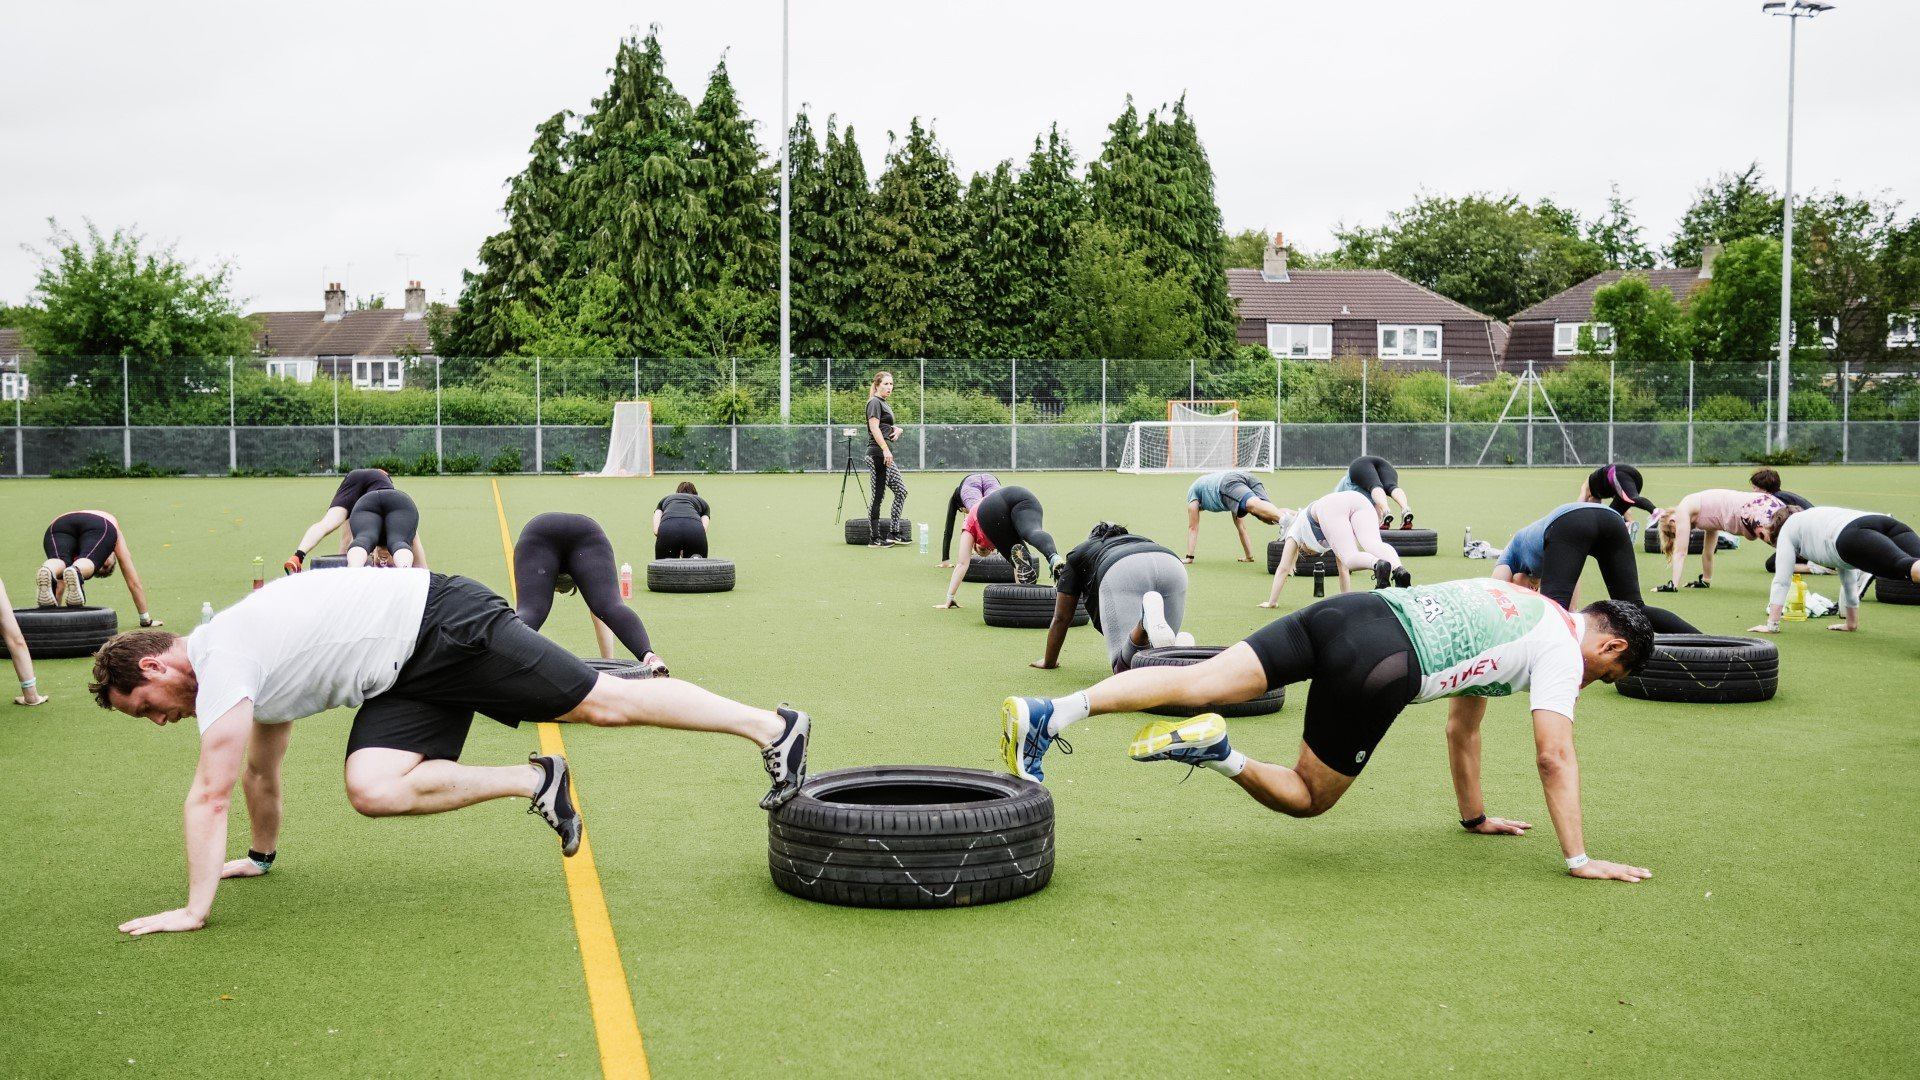 s year's family-friendly FitFest Oxford set to go ahead